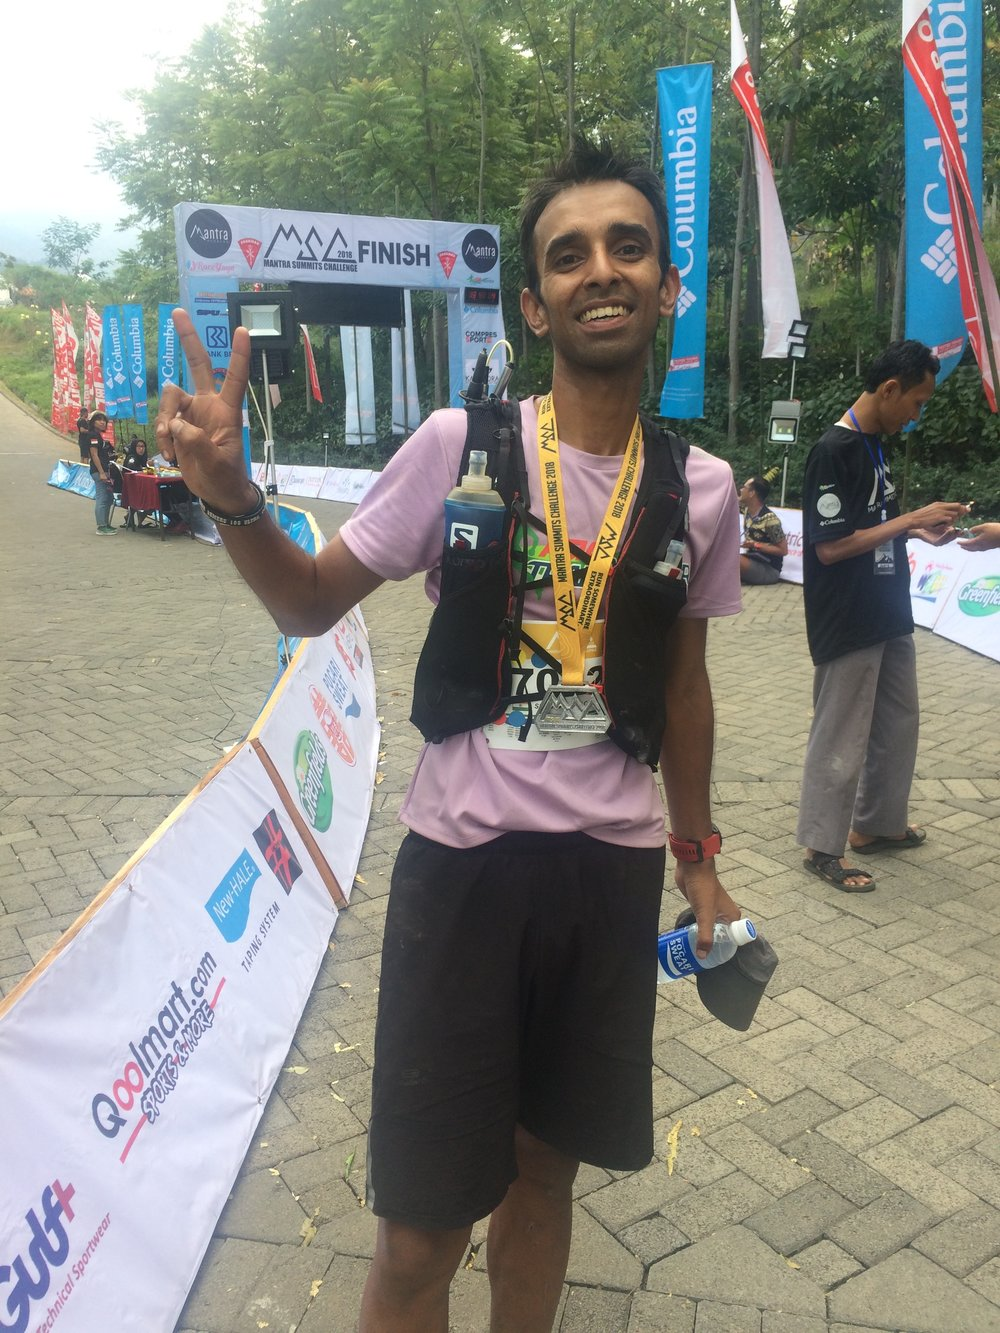 Shashwat Rao from India finished again in the top 10 and is now 8th in the ATM Championship